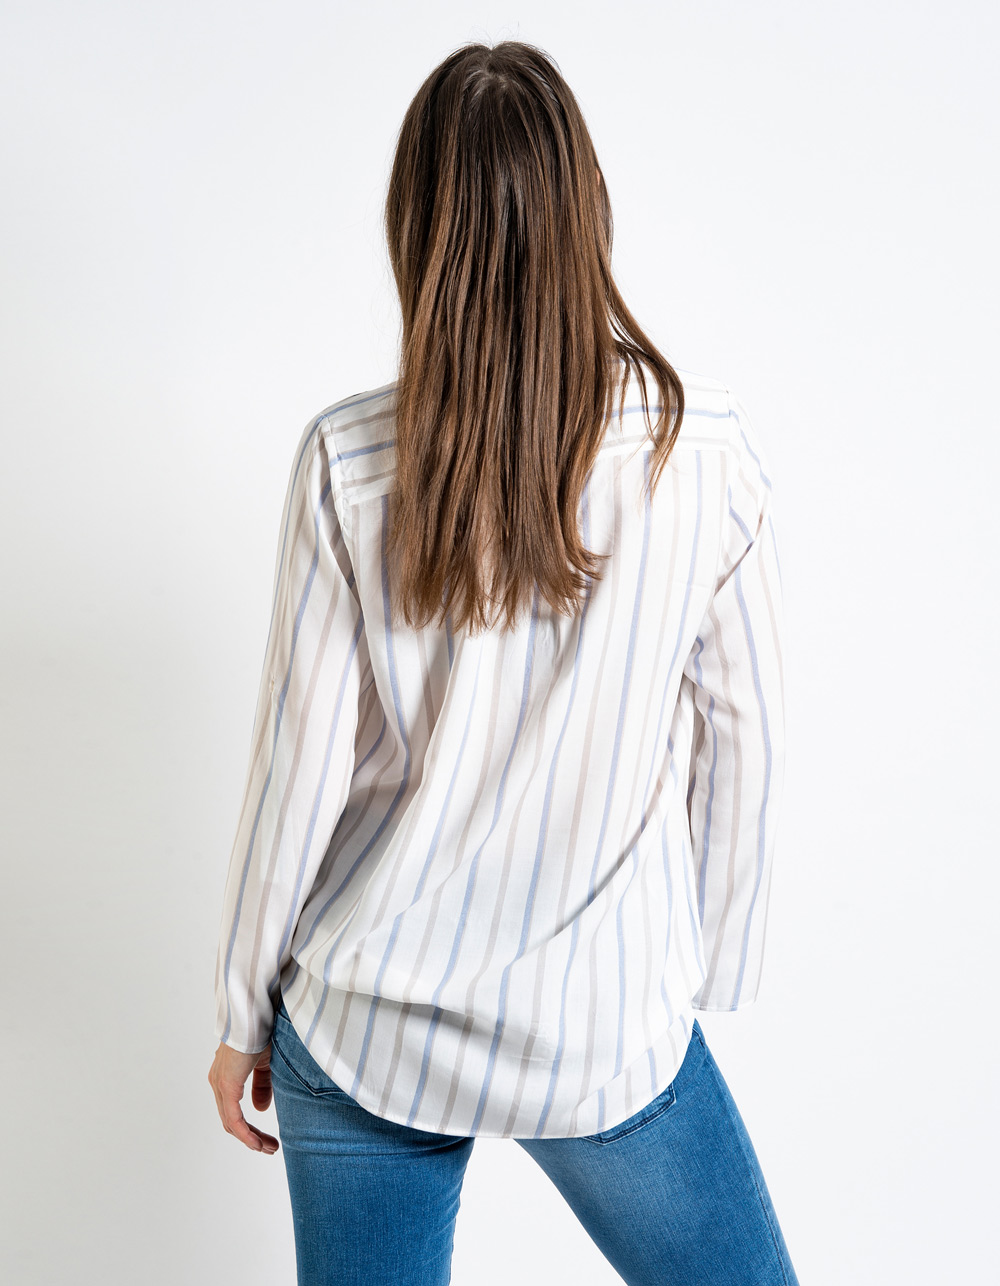 Blusa estampado rayas - Backside